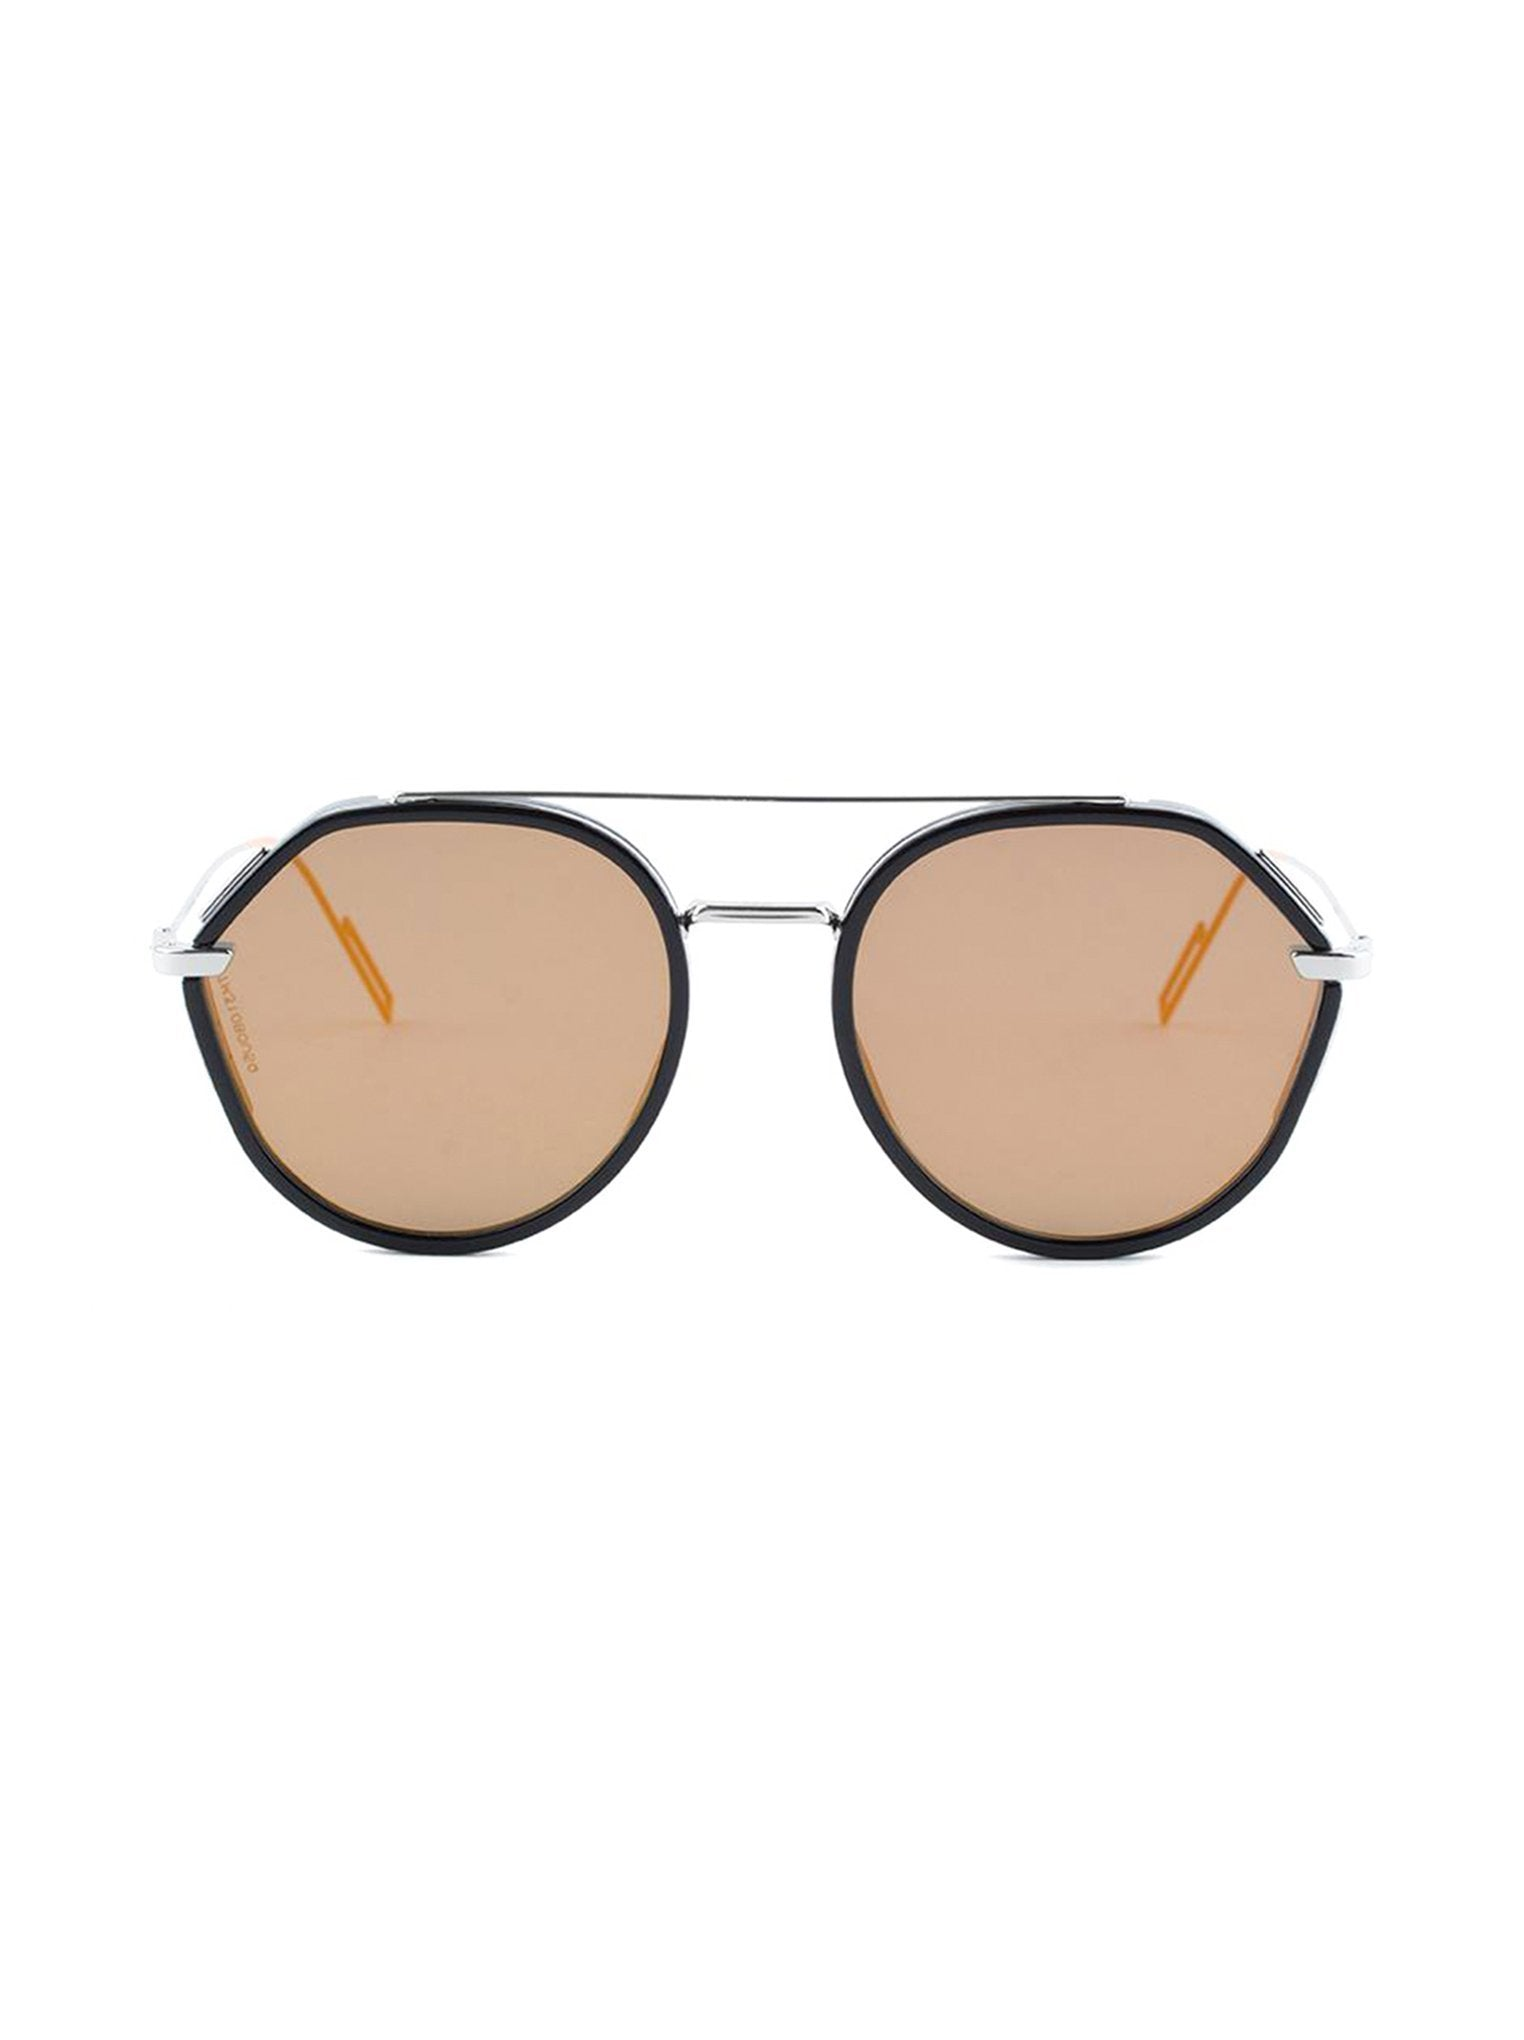 abf98a0a3ff61 Dior - 0219S Round Aviator Sunglasses - Black Palladium   Orange Mirrored -  ForwardModa